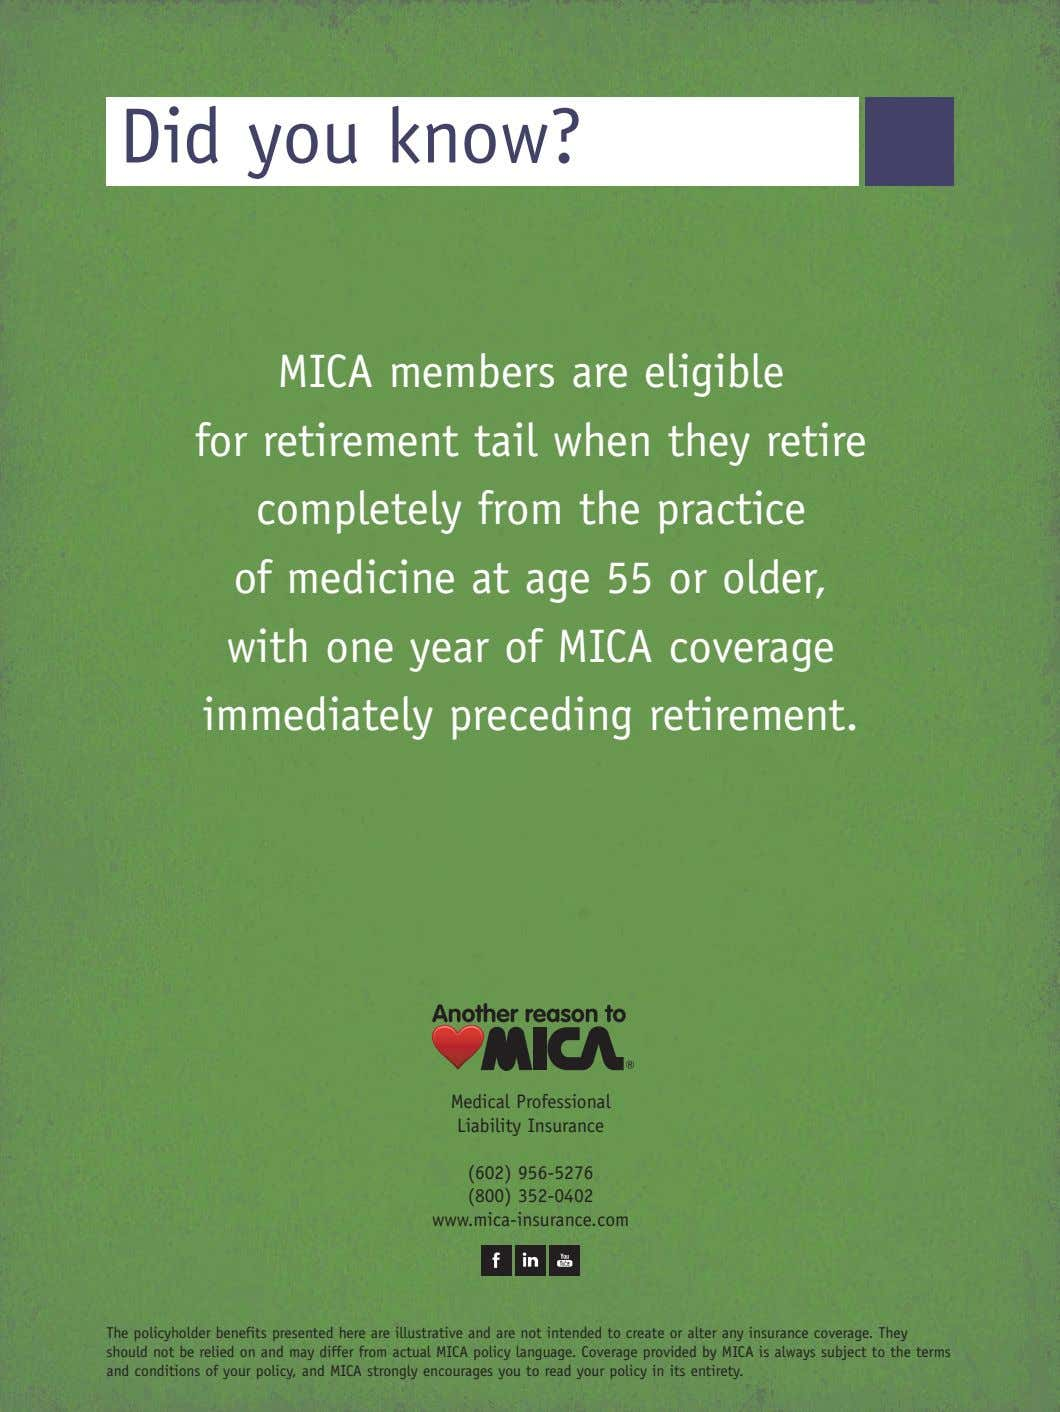 Did you know? MICA members are eligible for retirement tail when they retire completely from